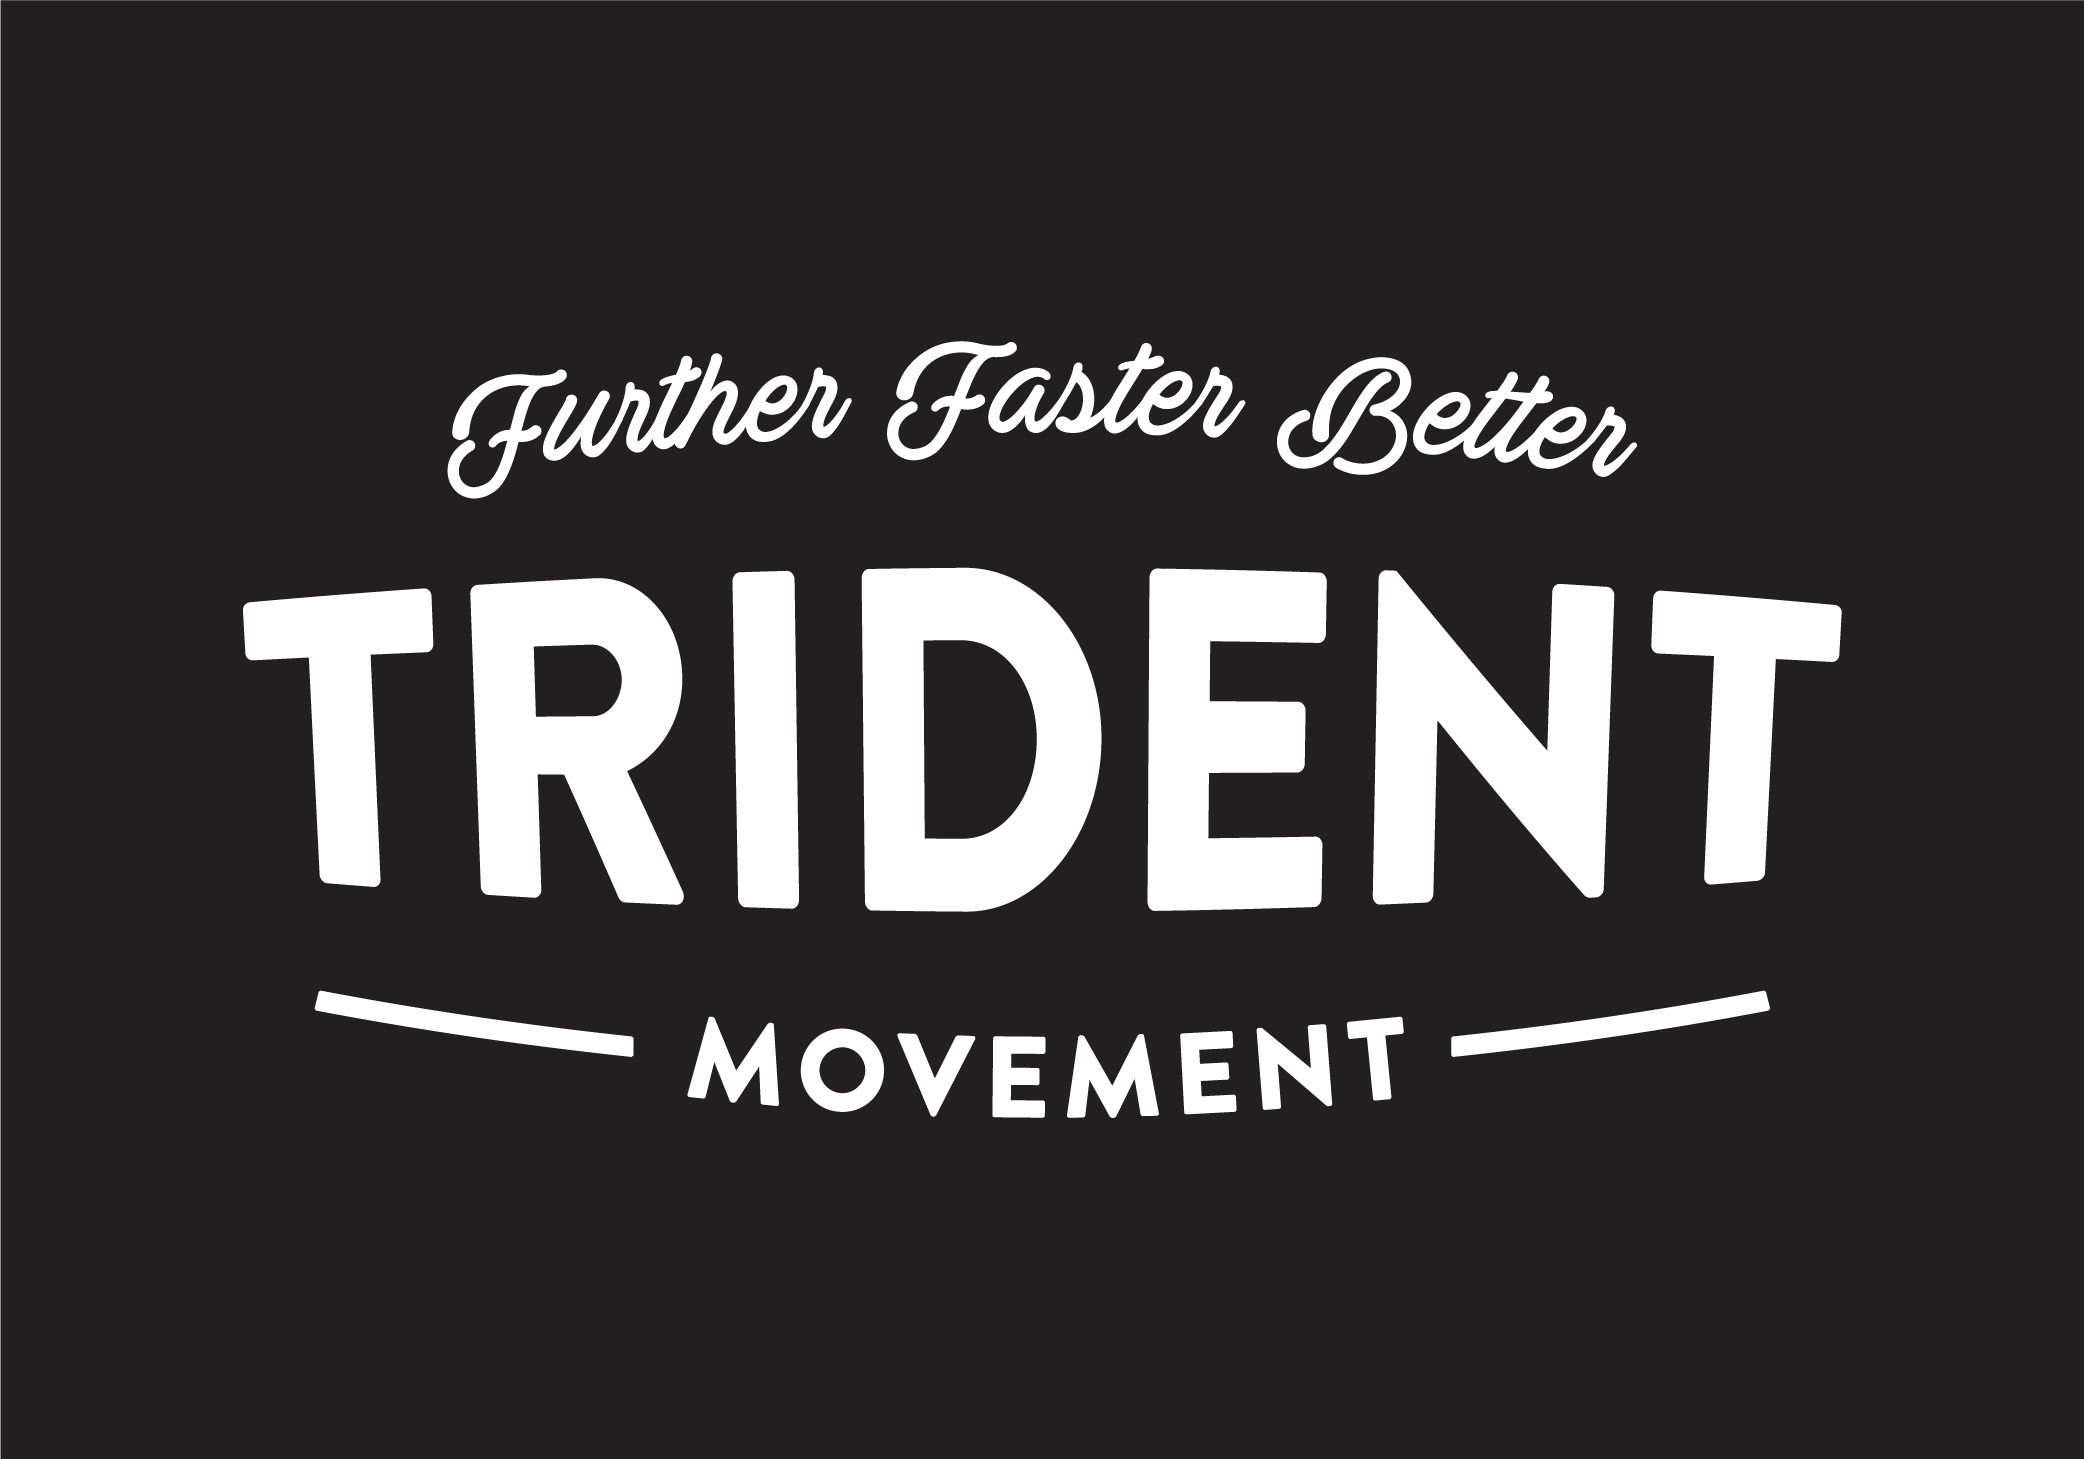 The Evolution of Trident